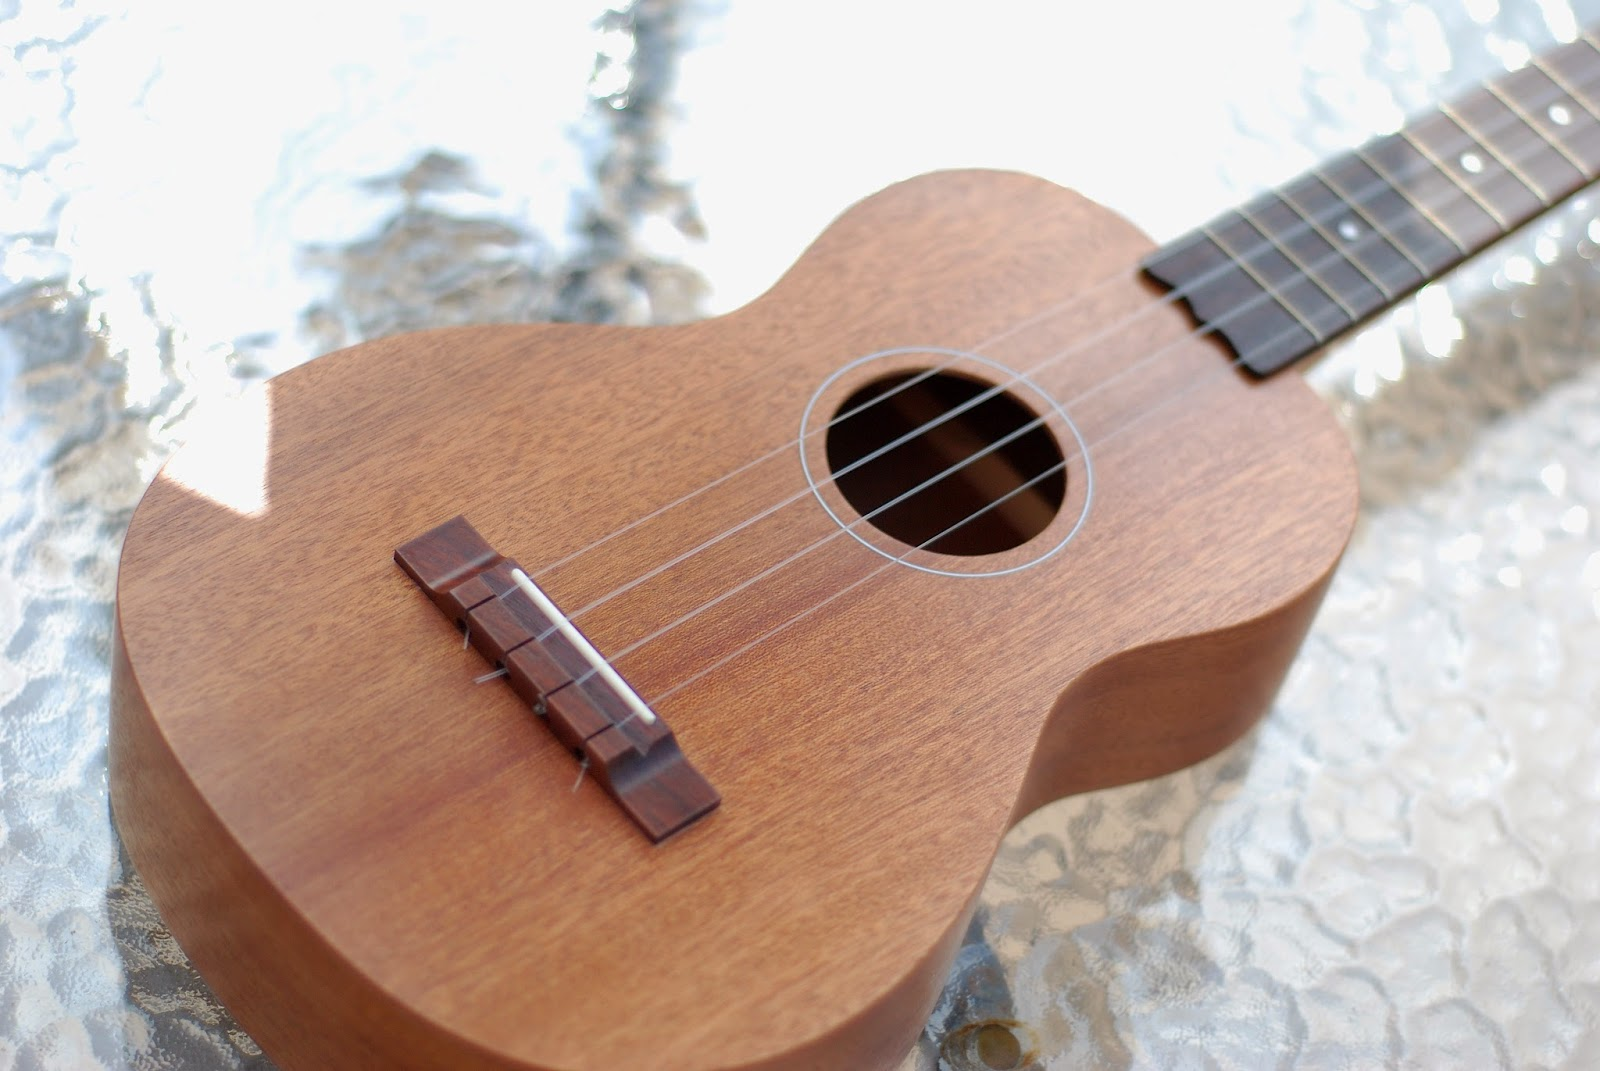 Brüko No9 Tenor Ukulele body